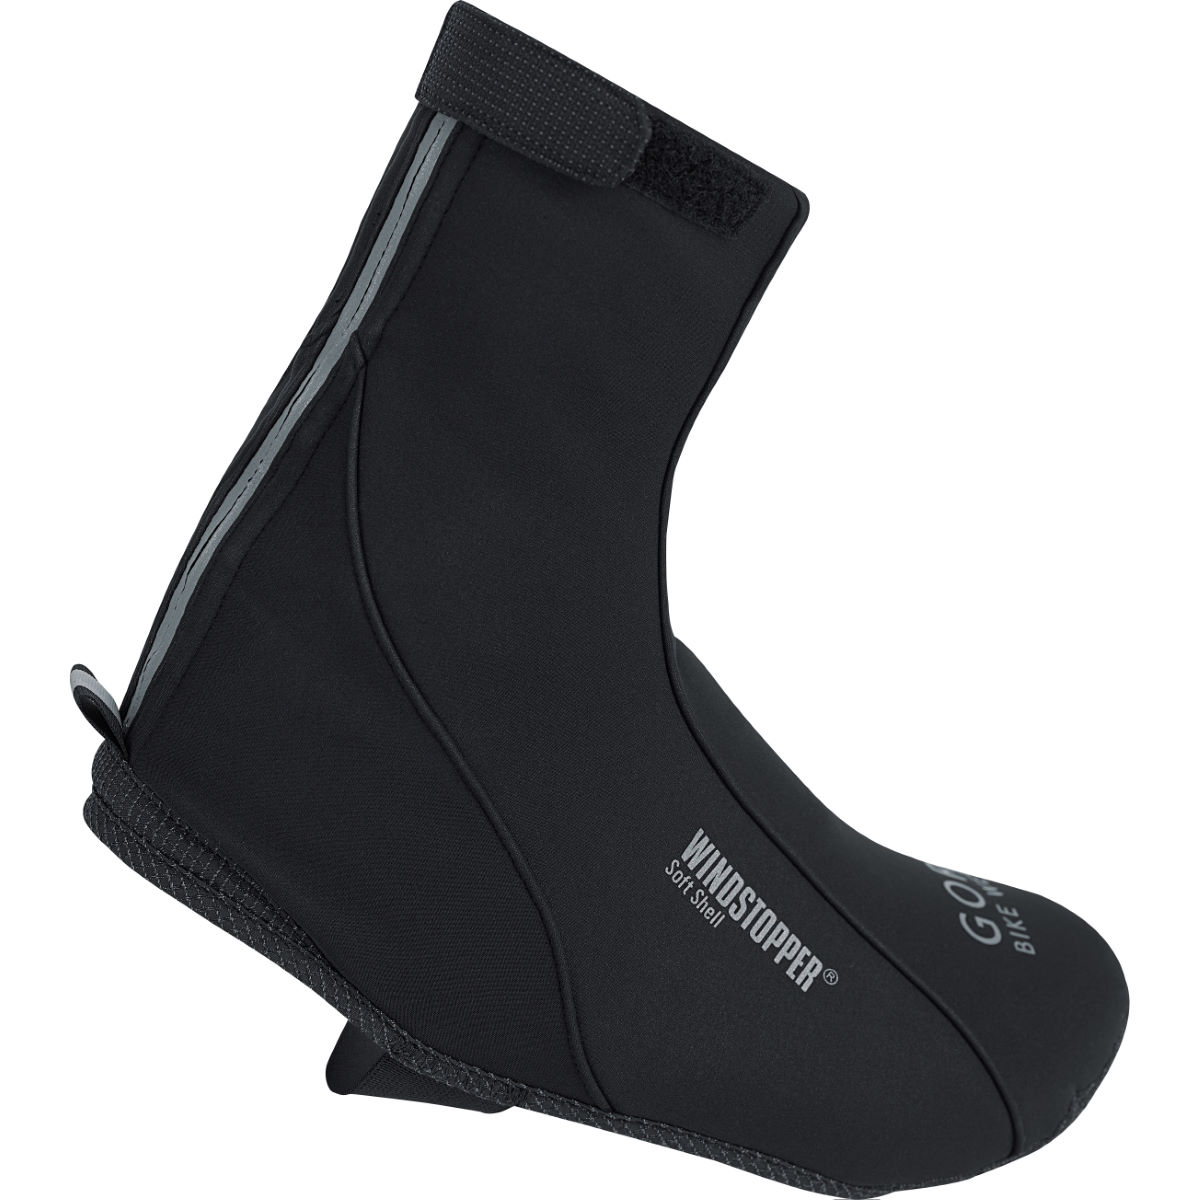 Couvre-chaussures de route Gore Bike Wear WINDSTOPPER Softshell Thermo